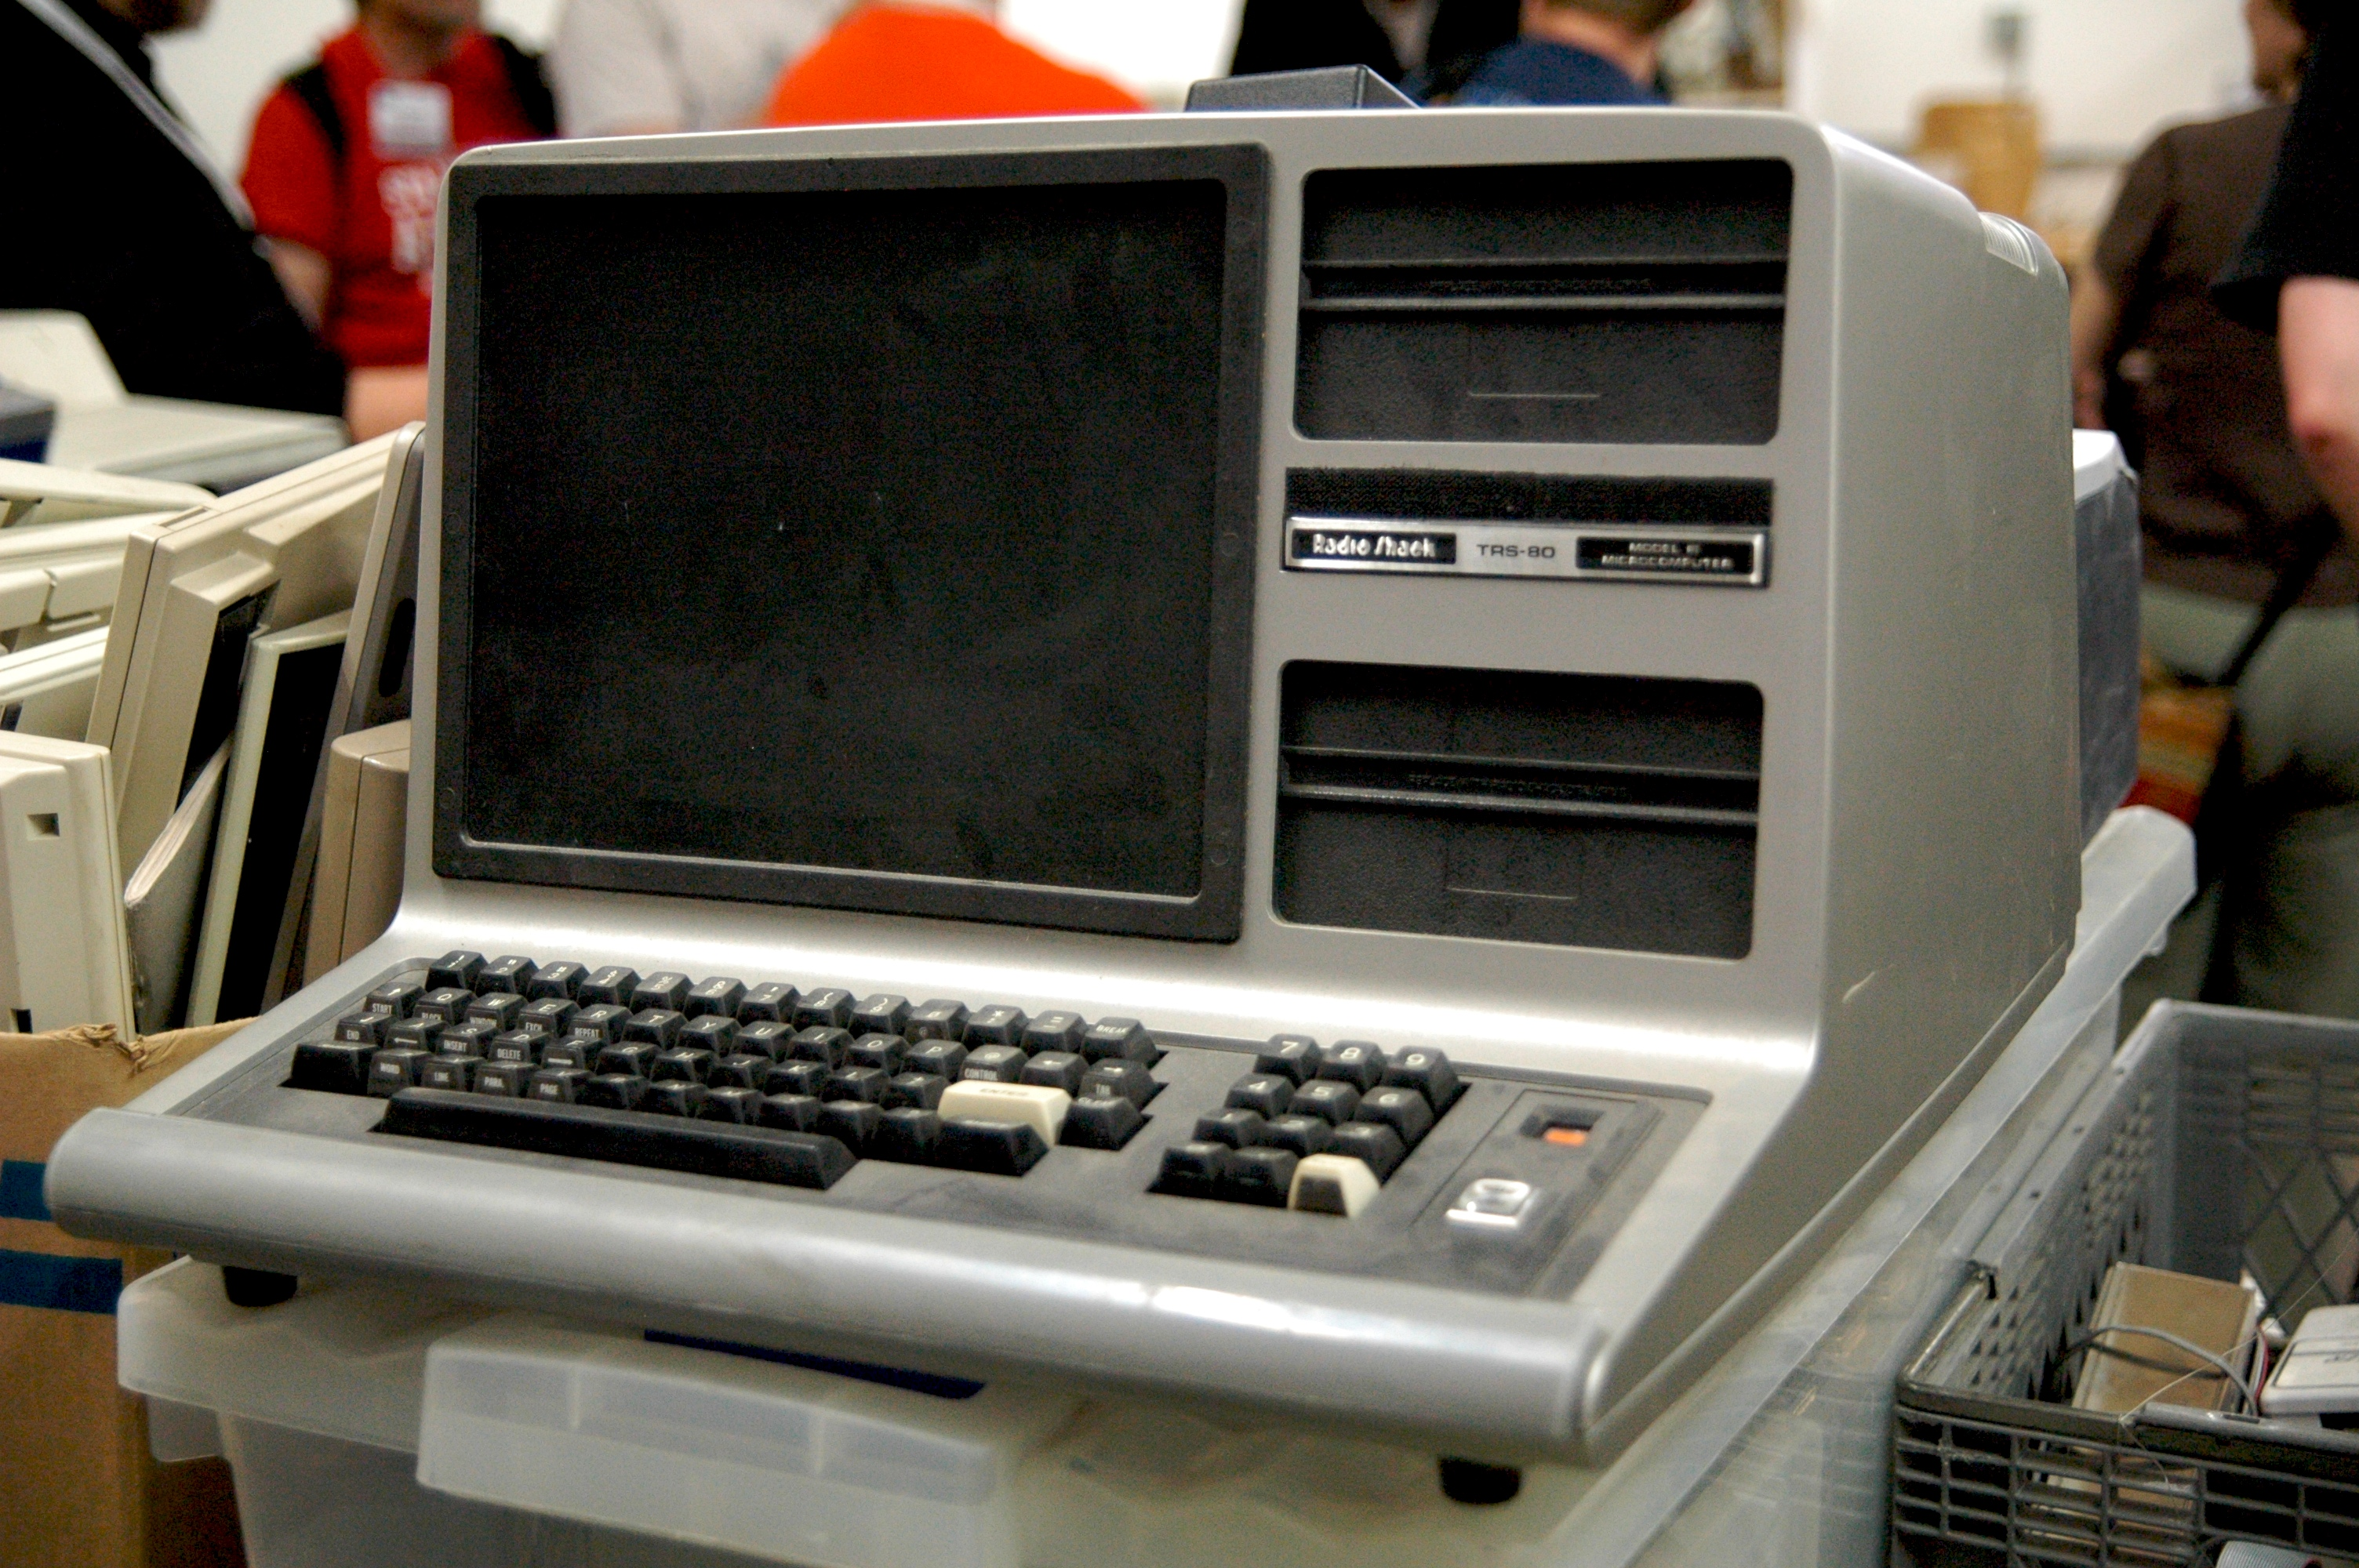 The good old TRS-80 Model III